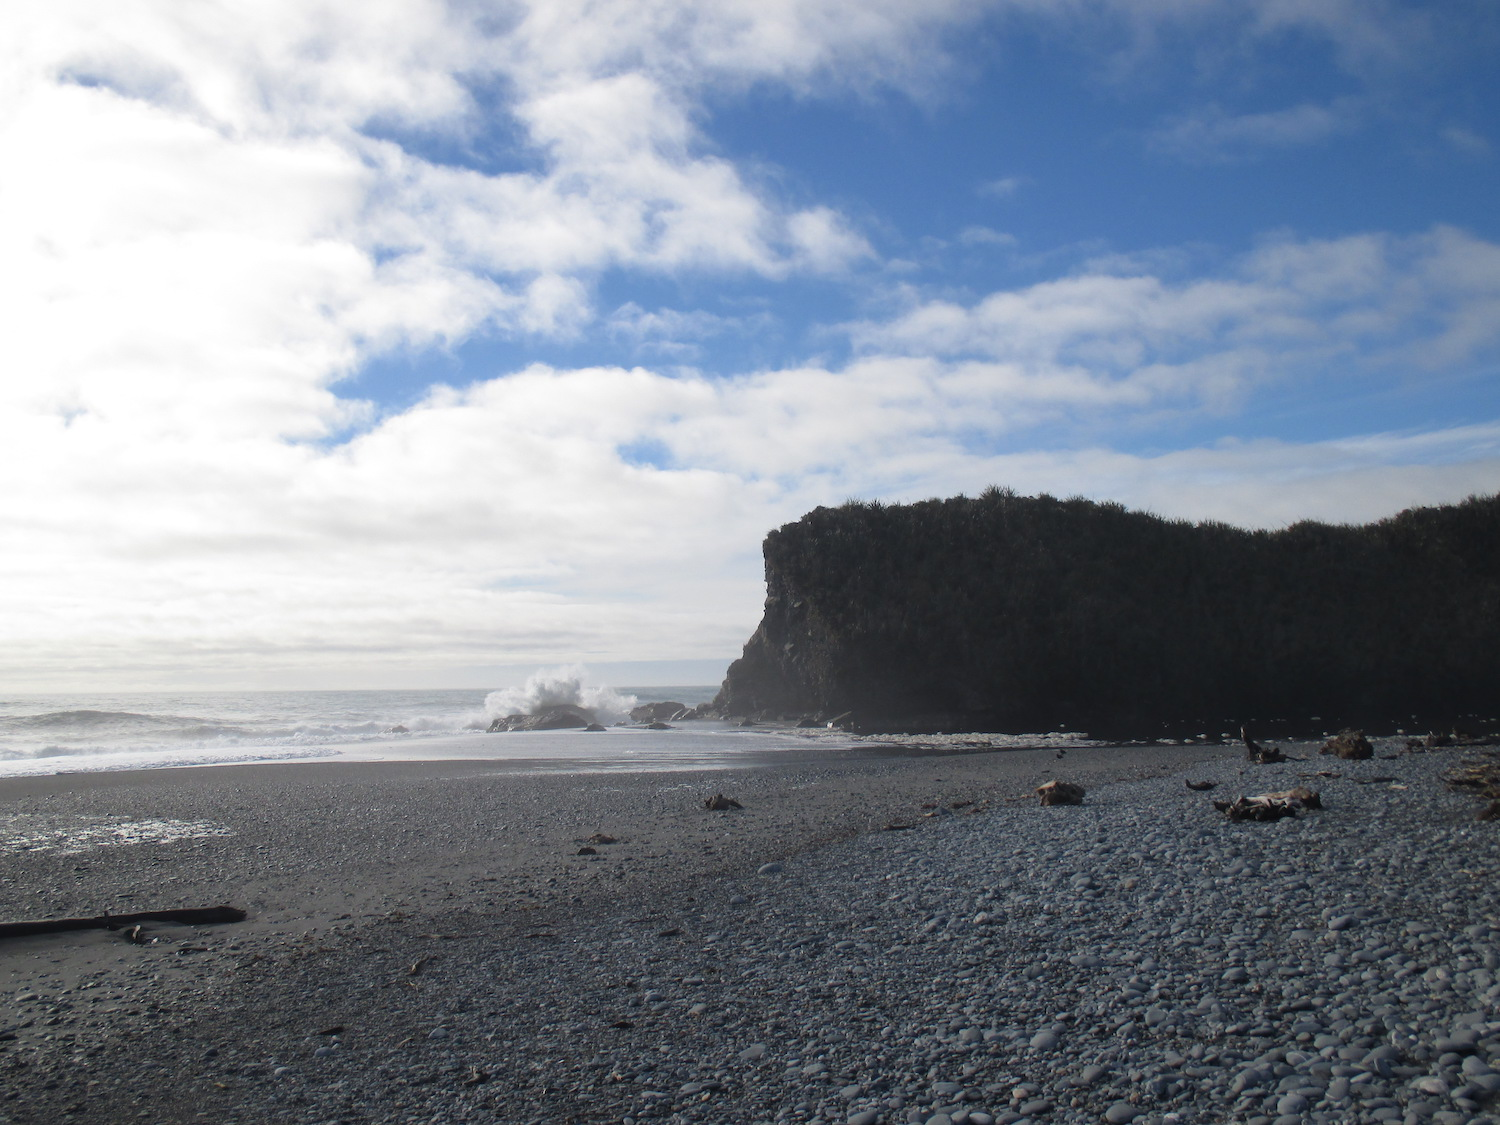 Gillespies & Galway Beach - Glacier Country New Zealand  |Galway Beaches